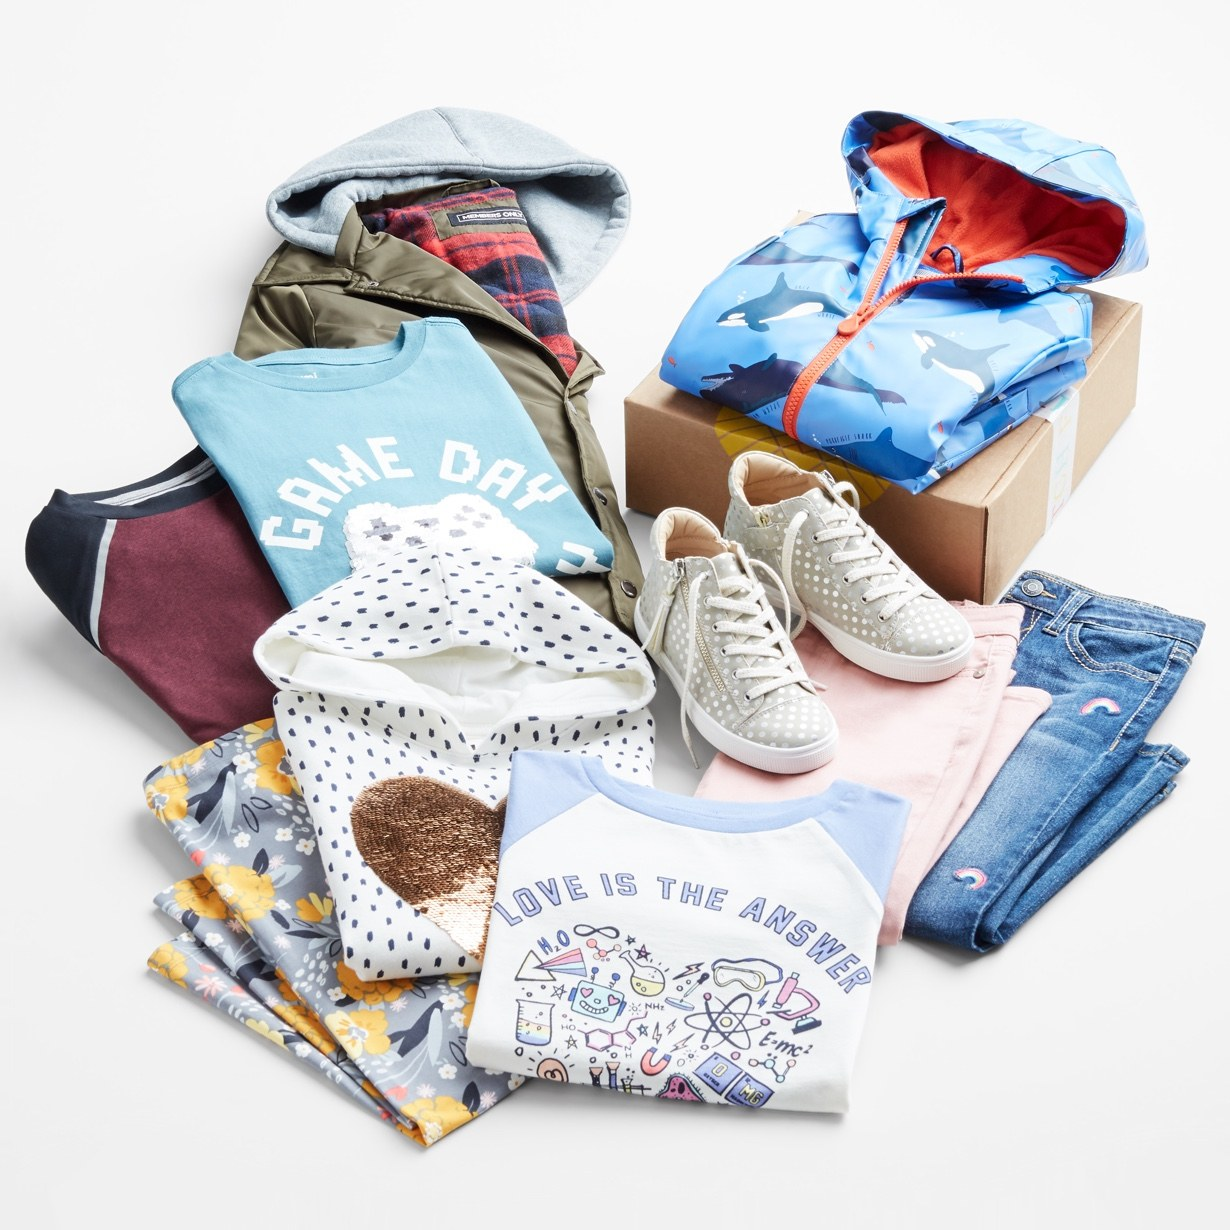 A pile of clothing including graphic tees, hoodie, jackets and sneakers.